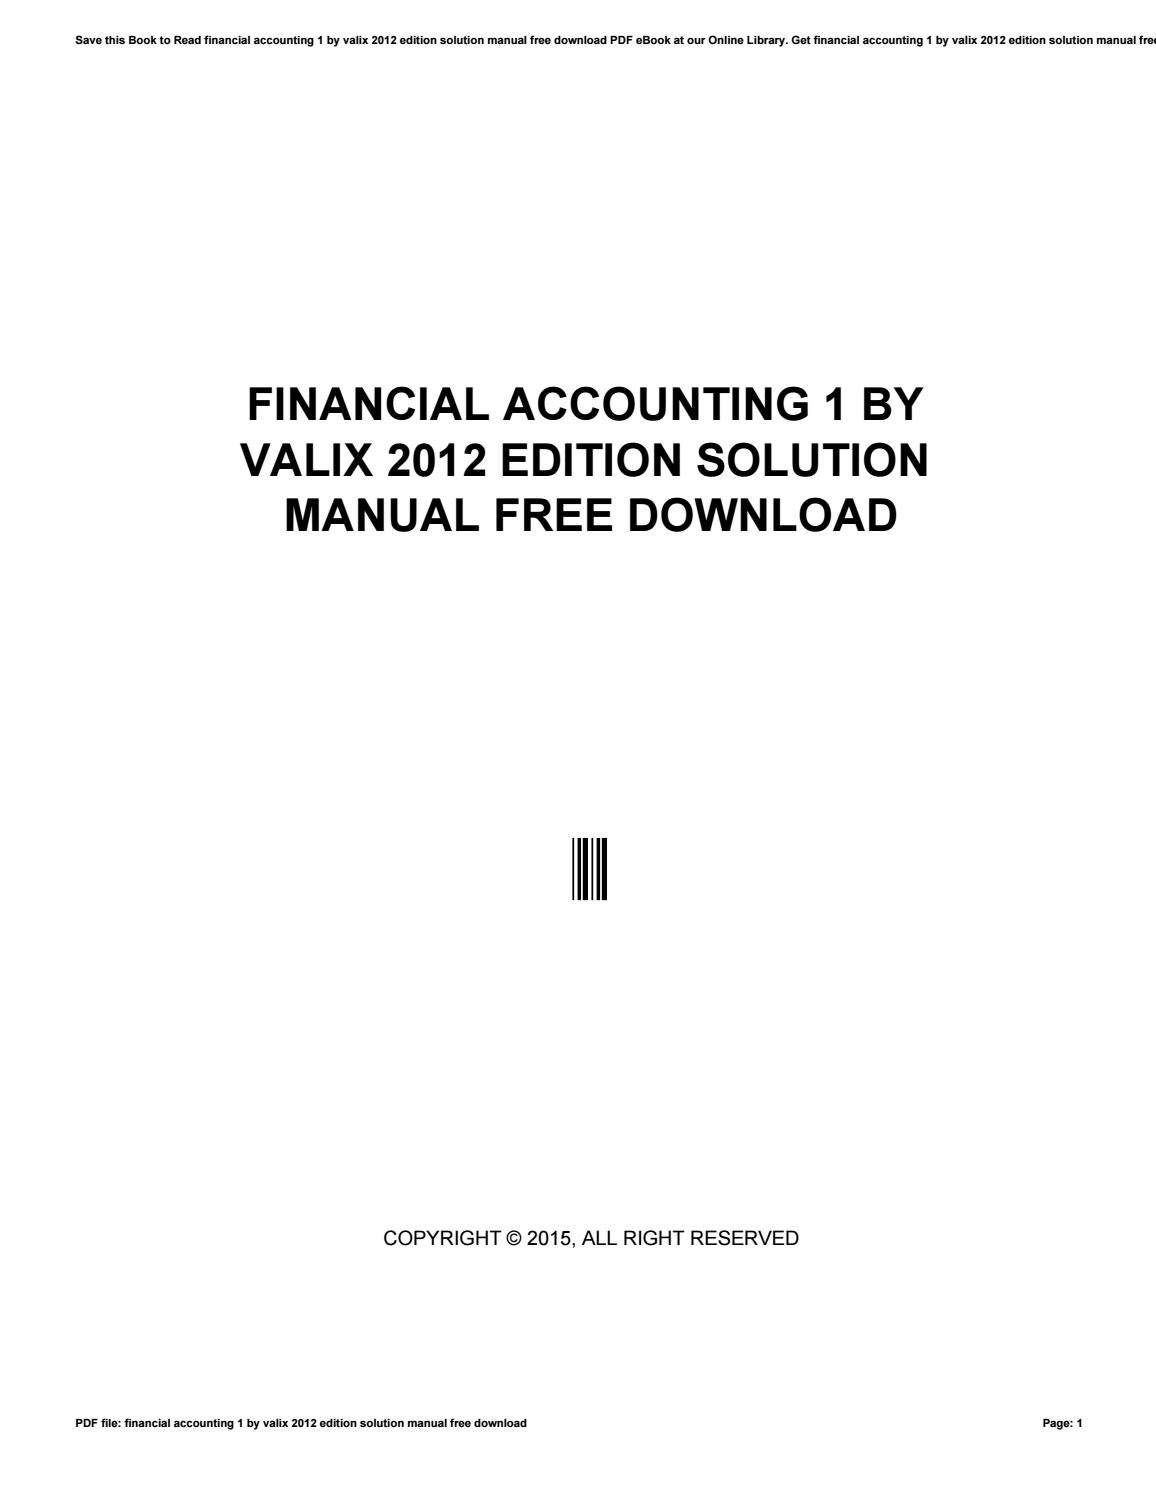 financial accounting 1 by valix 2012 edition solution manual free rh issuu com financial accounting 2 valix 2012 solution manual financial accounting 3 valix solution manual 2012